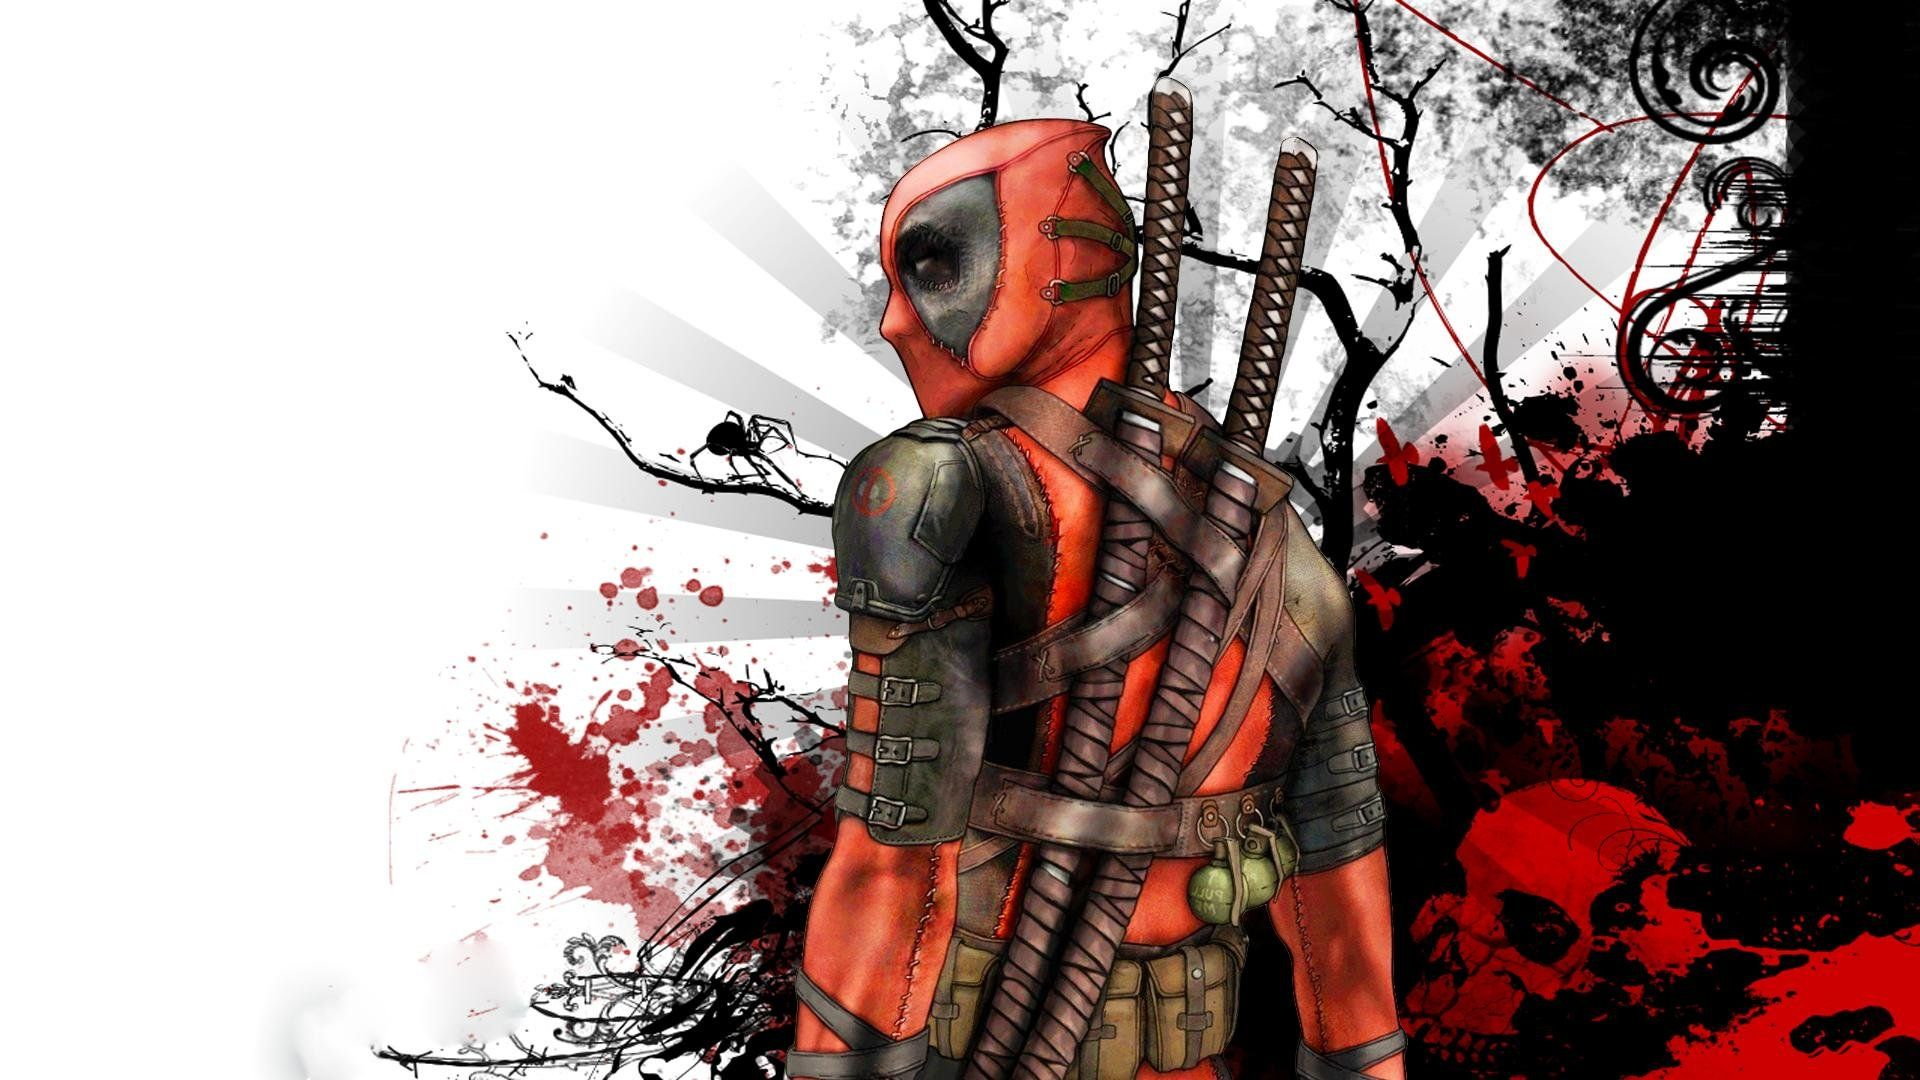 Awesome Deadpool Wallpapers - Top Free